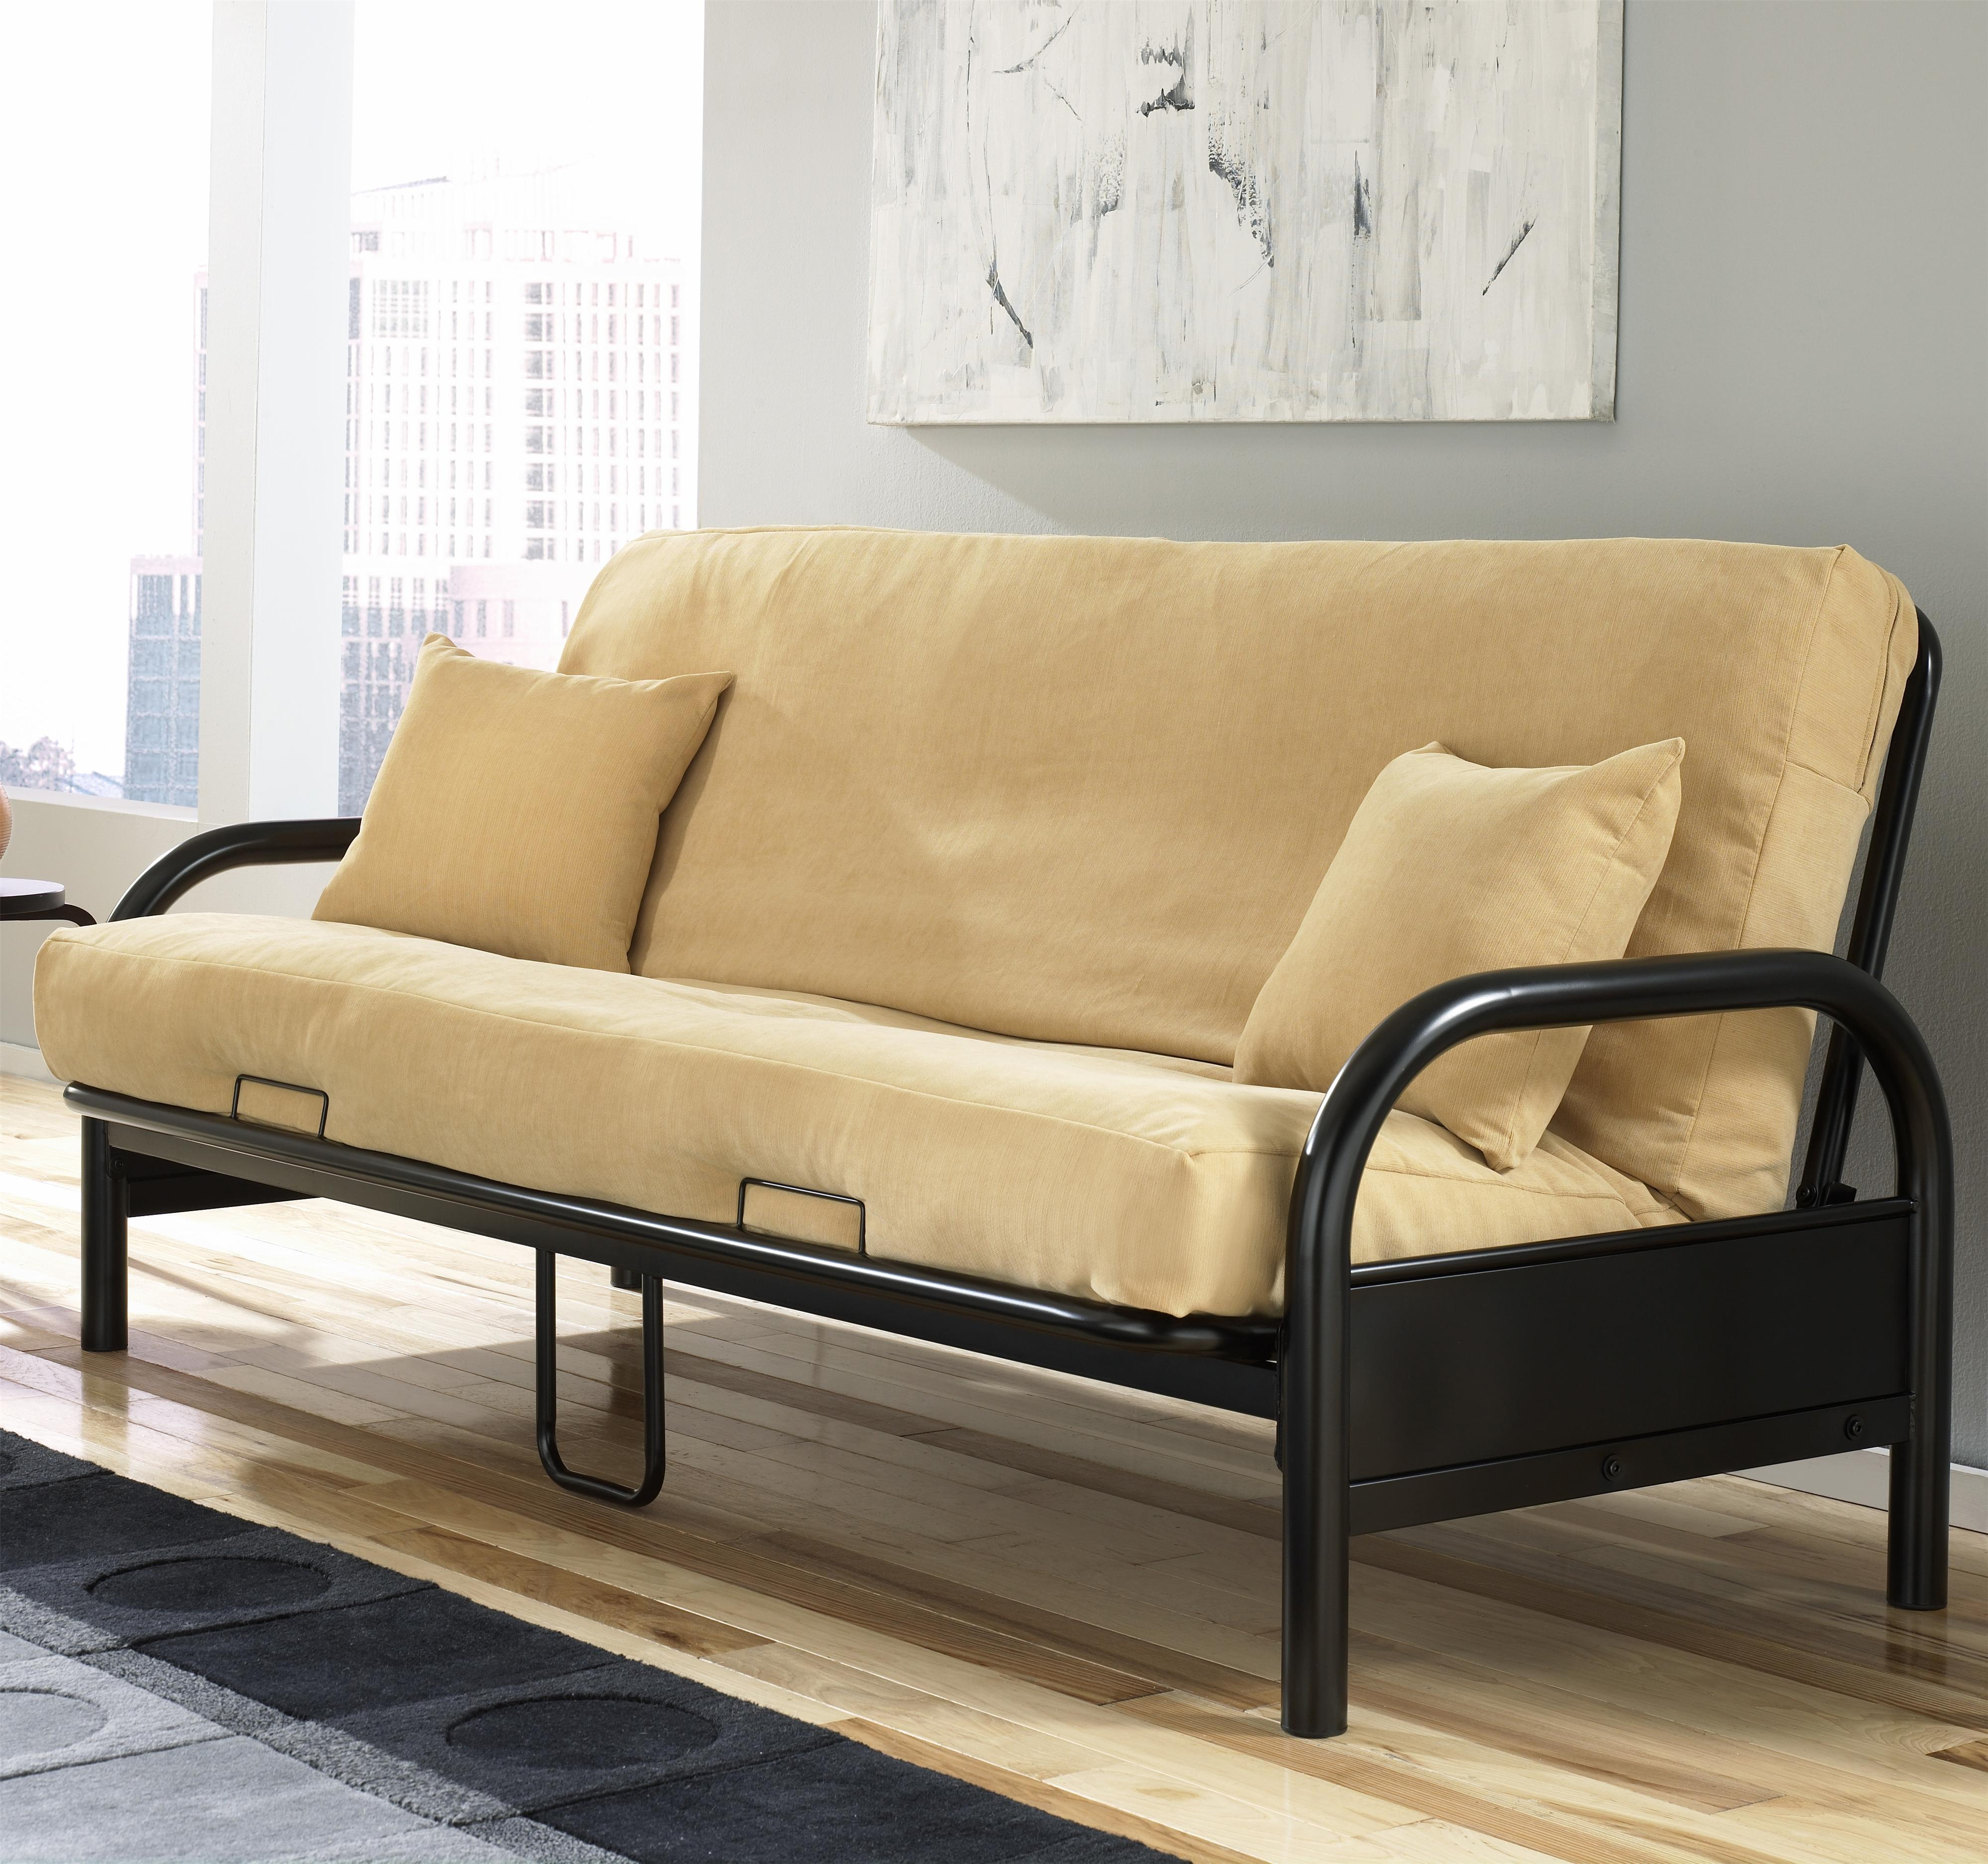 Futons Saturn Futon W Black Innerspring Mattress By Fashion Bed Group